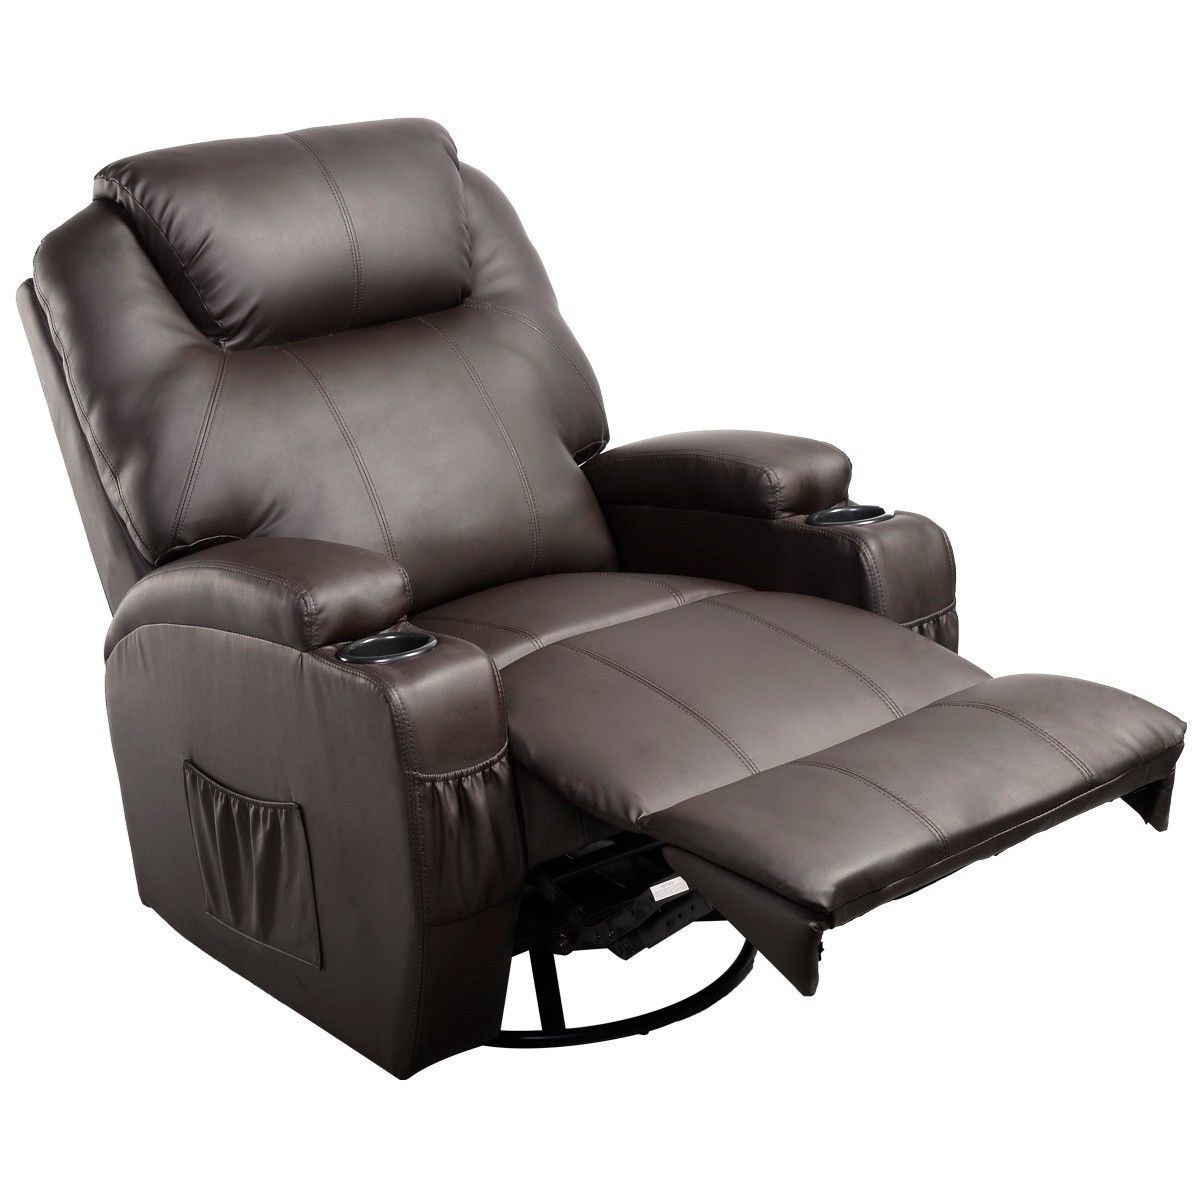 Comfortable Sofas And Chairs With Latest Sofa : Full Size Leather Sleeper Sofa Elegant Sofas Awesome (View 5 of 15)